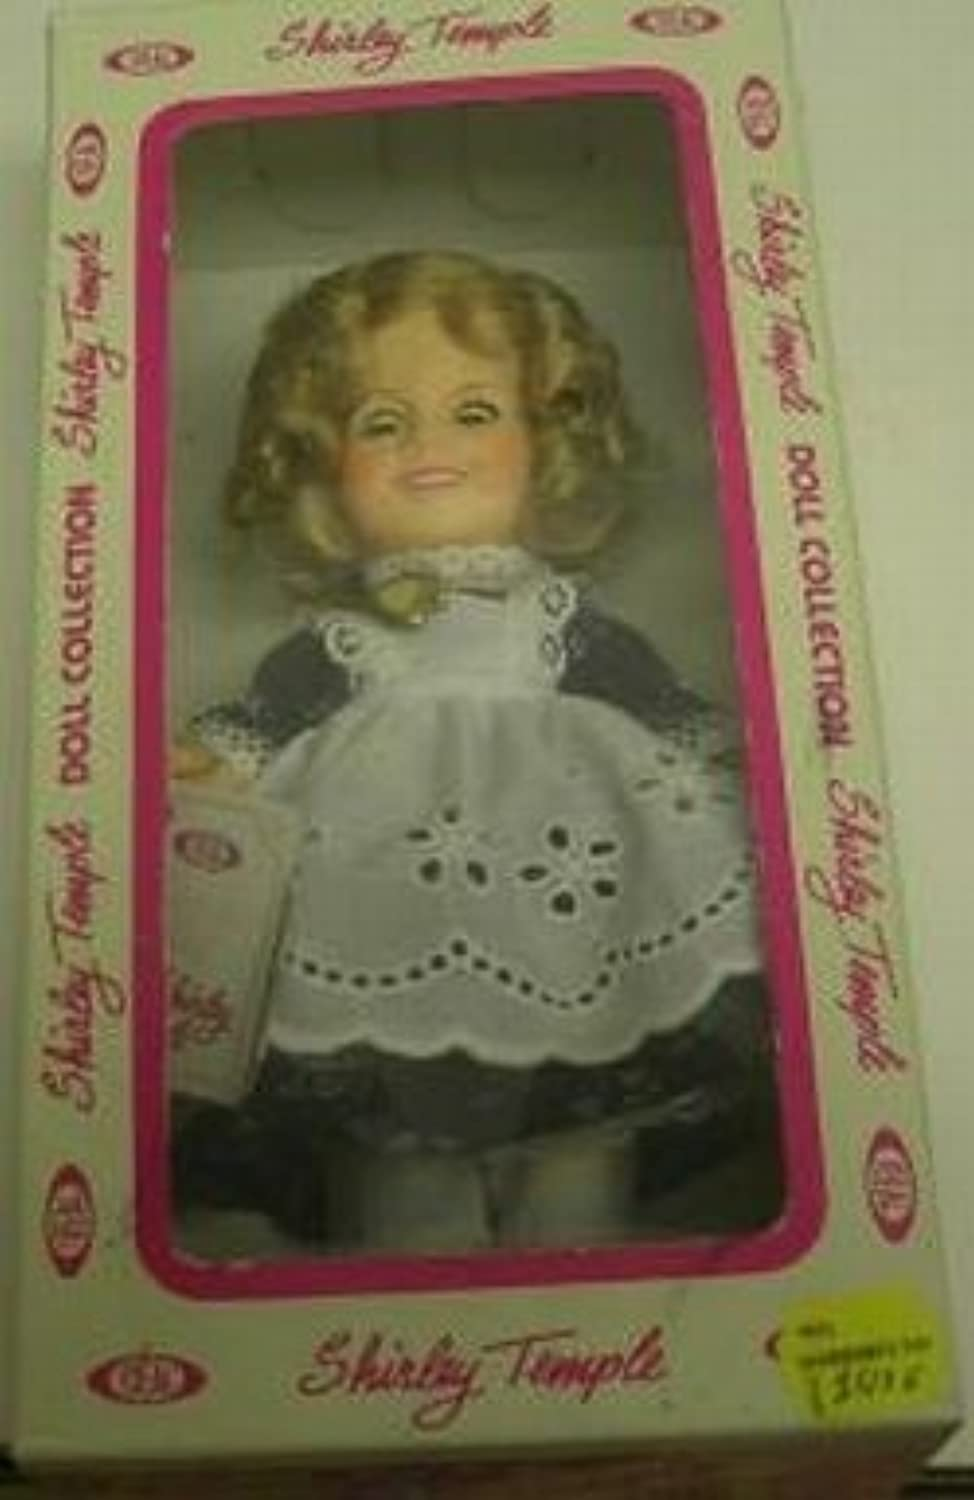 Shirley Temple The Littlest Rebel Ideal 7 1/2 Inch Doll by Ideal [並行輸入品]